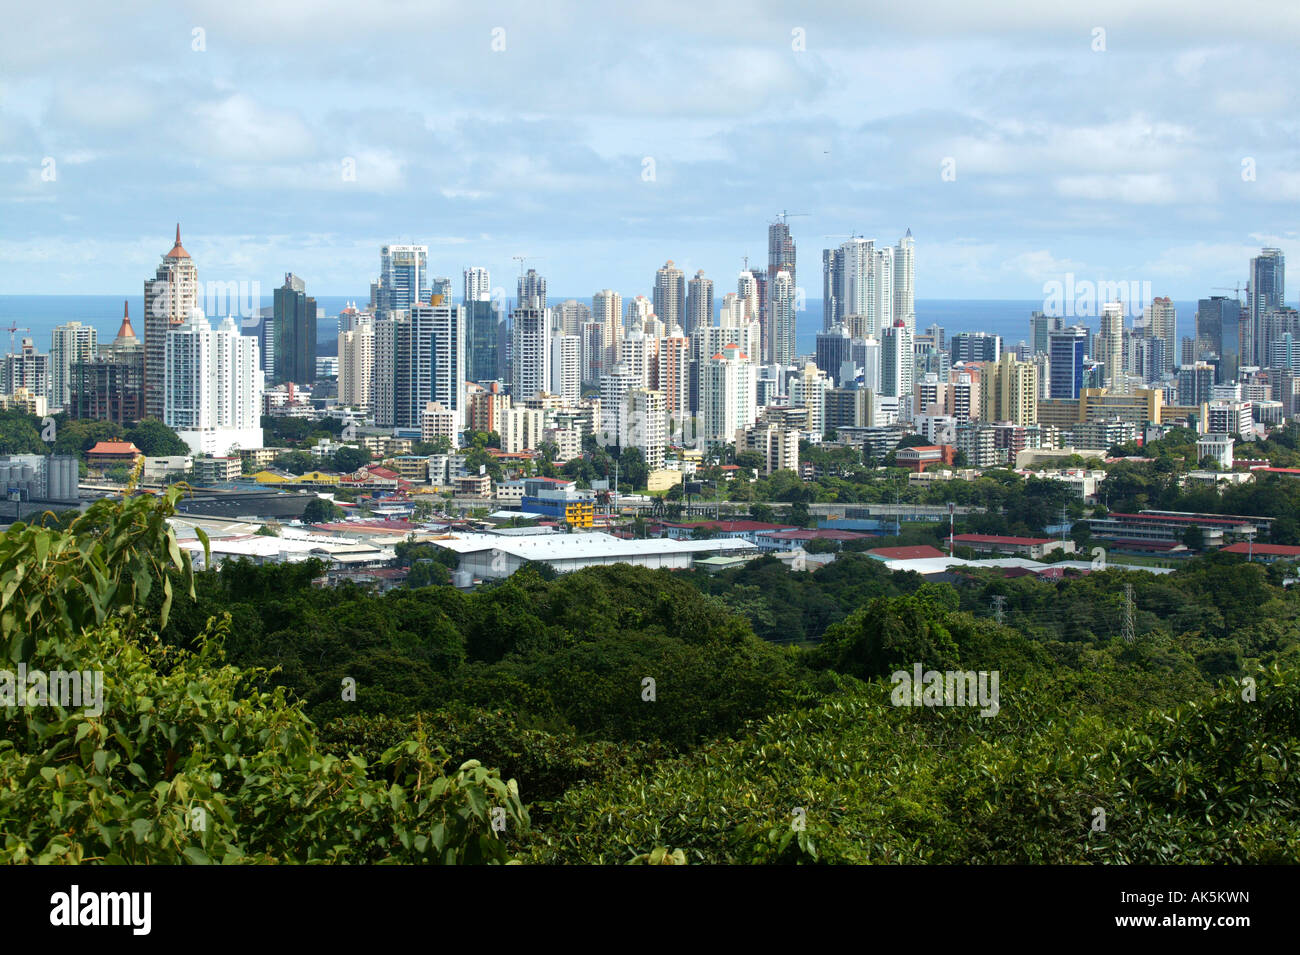 View over Panama City from the hill of Metropolitan park, Panama province, Republic of Panama. November, 2007. - Stock Image